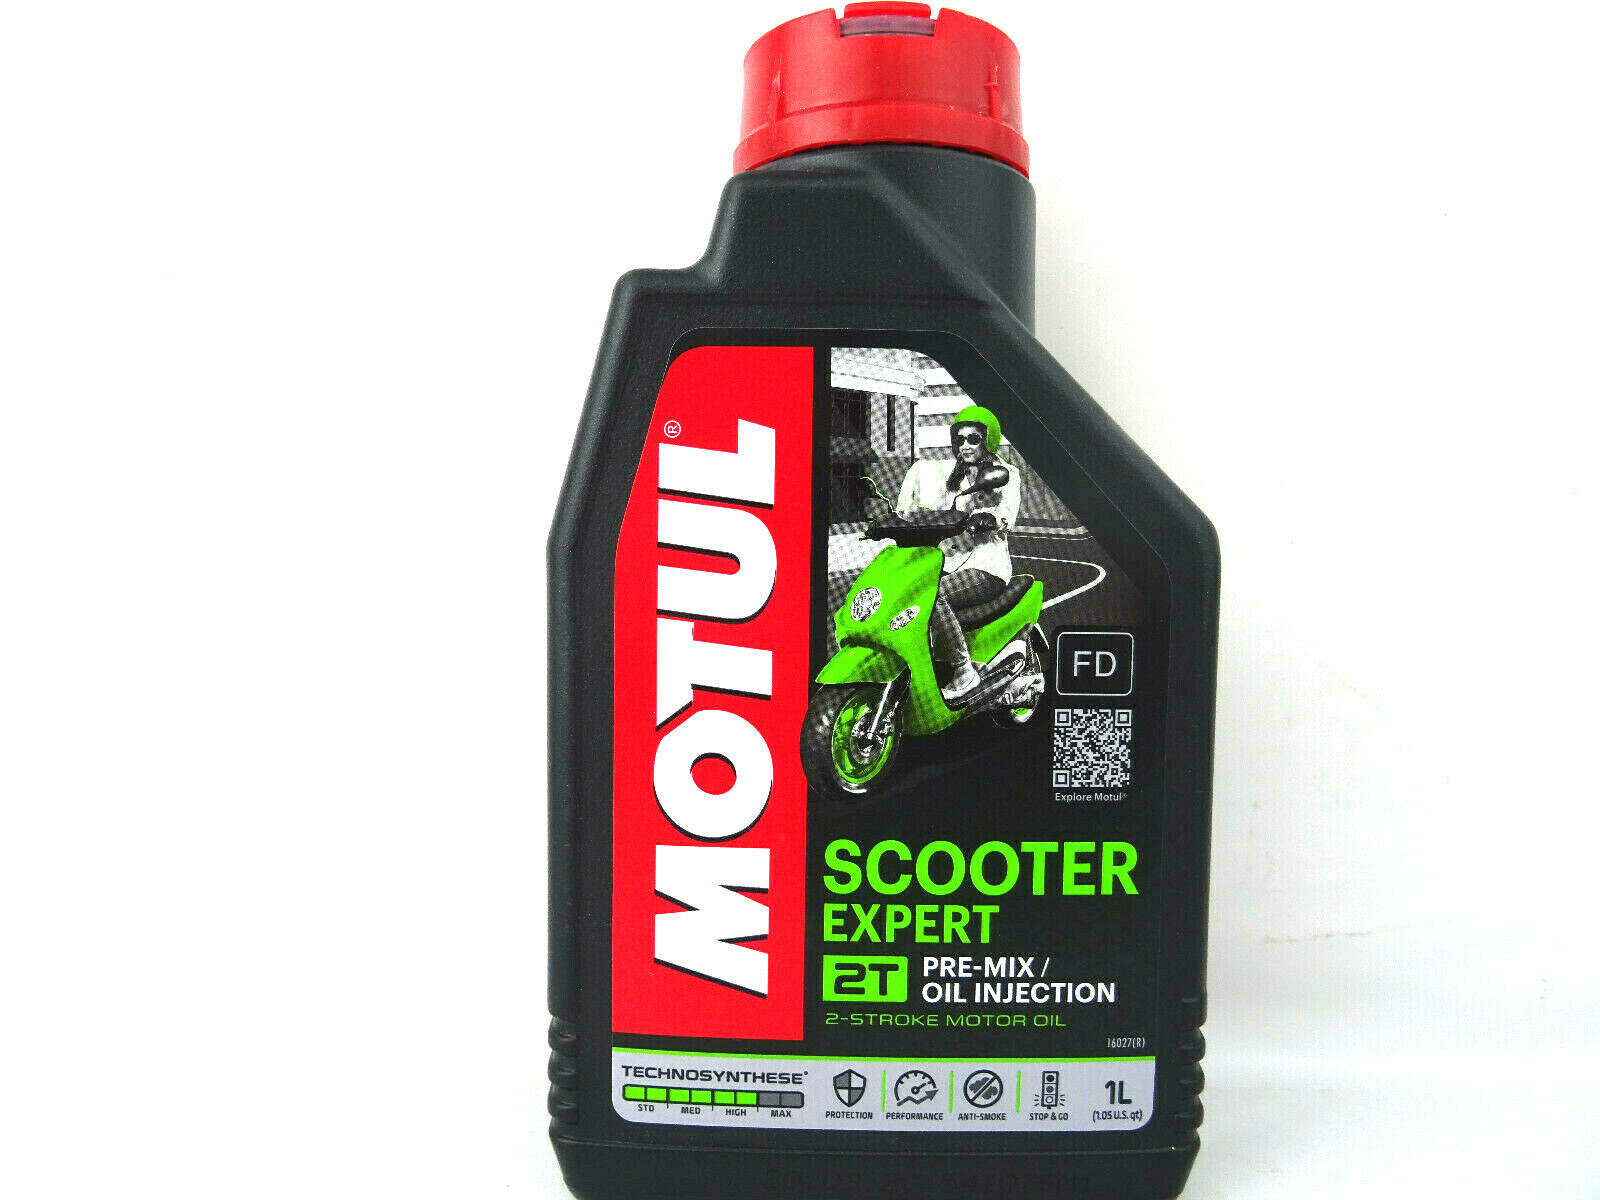 motul scooter expert 2t 2 takt motorroller l scooter l roller l 1x 1 liter eur 12 44 picclick de. Black Bedroom Furniture Sets. Home Design Ideas